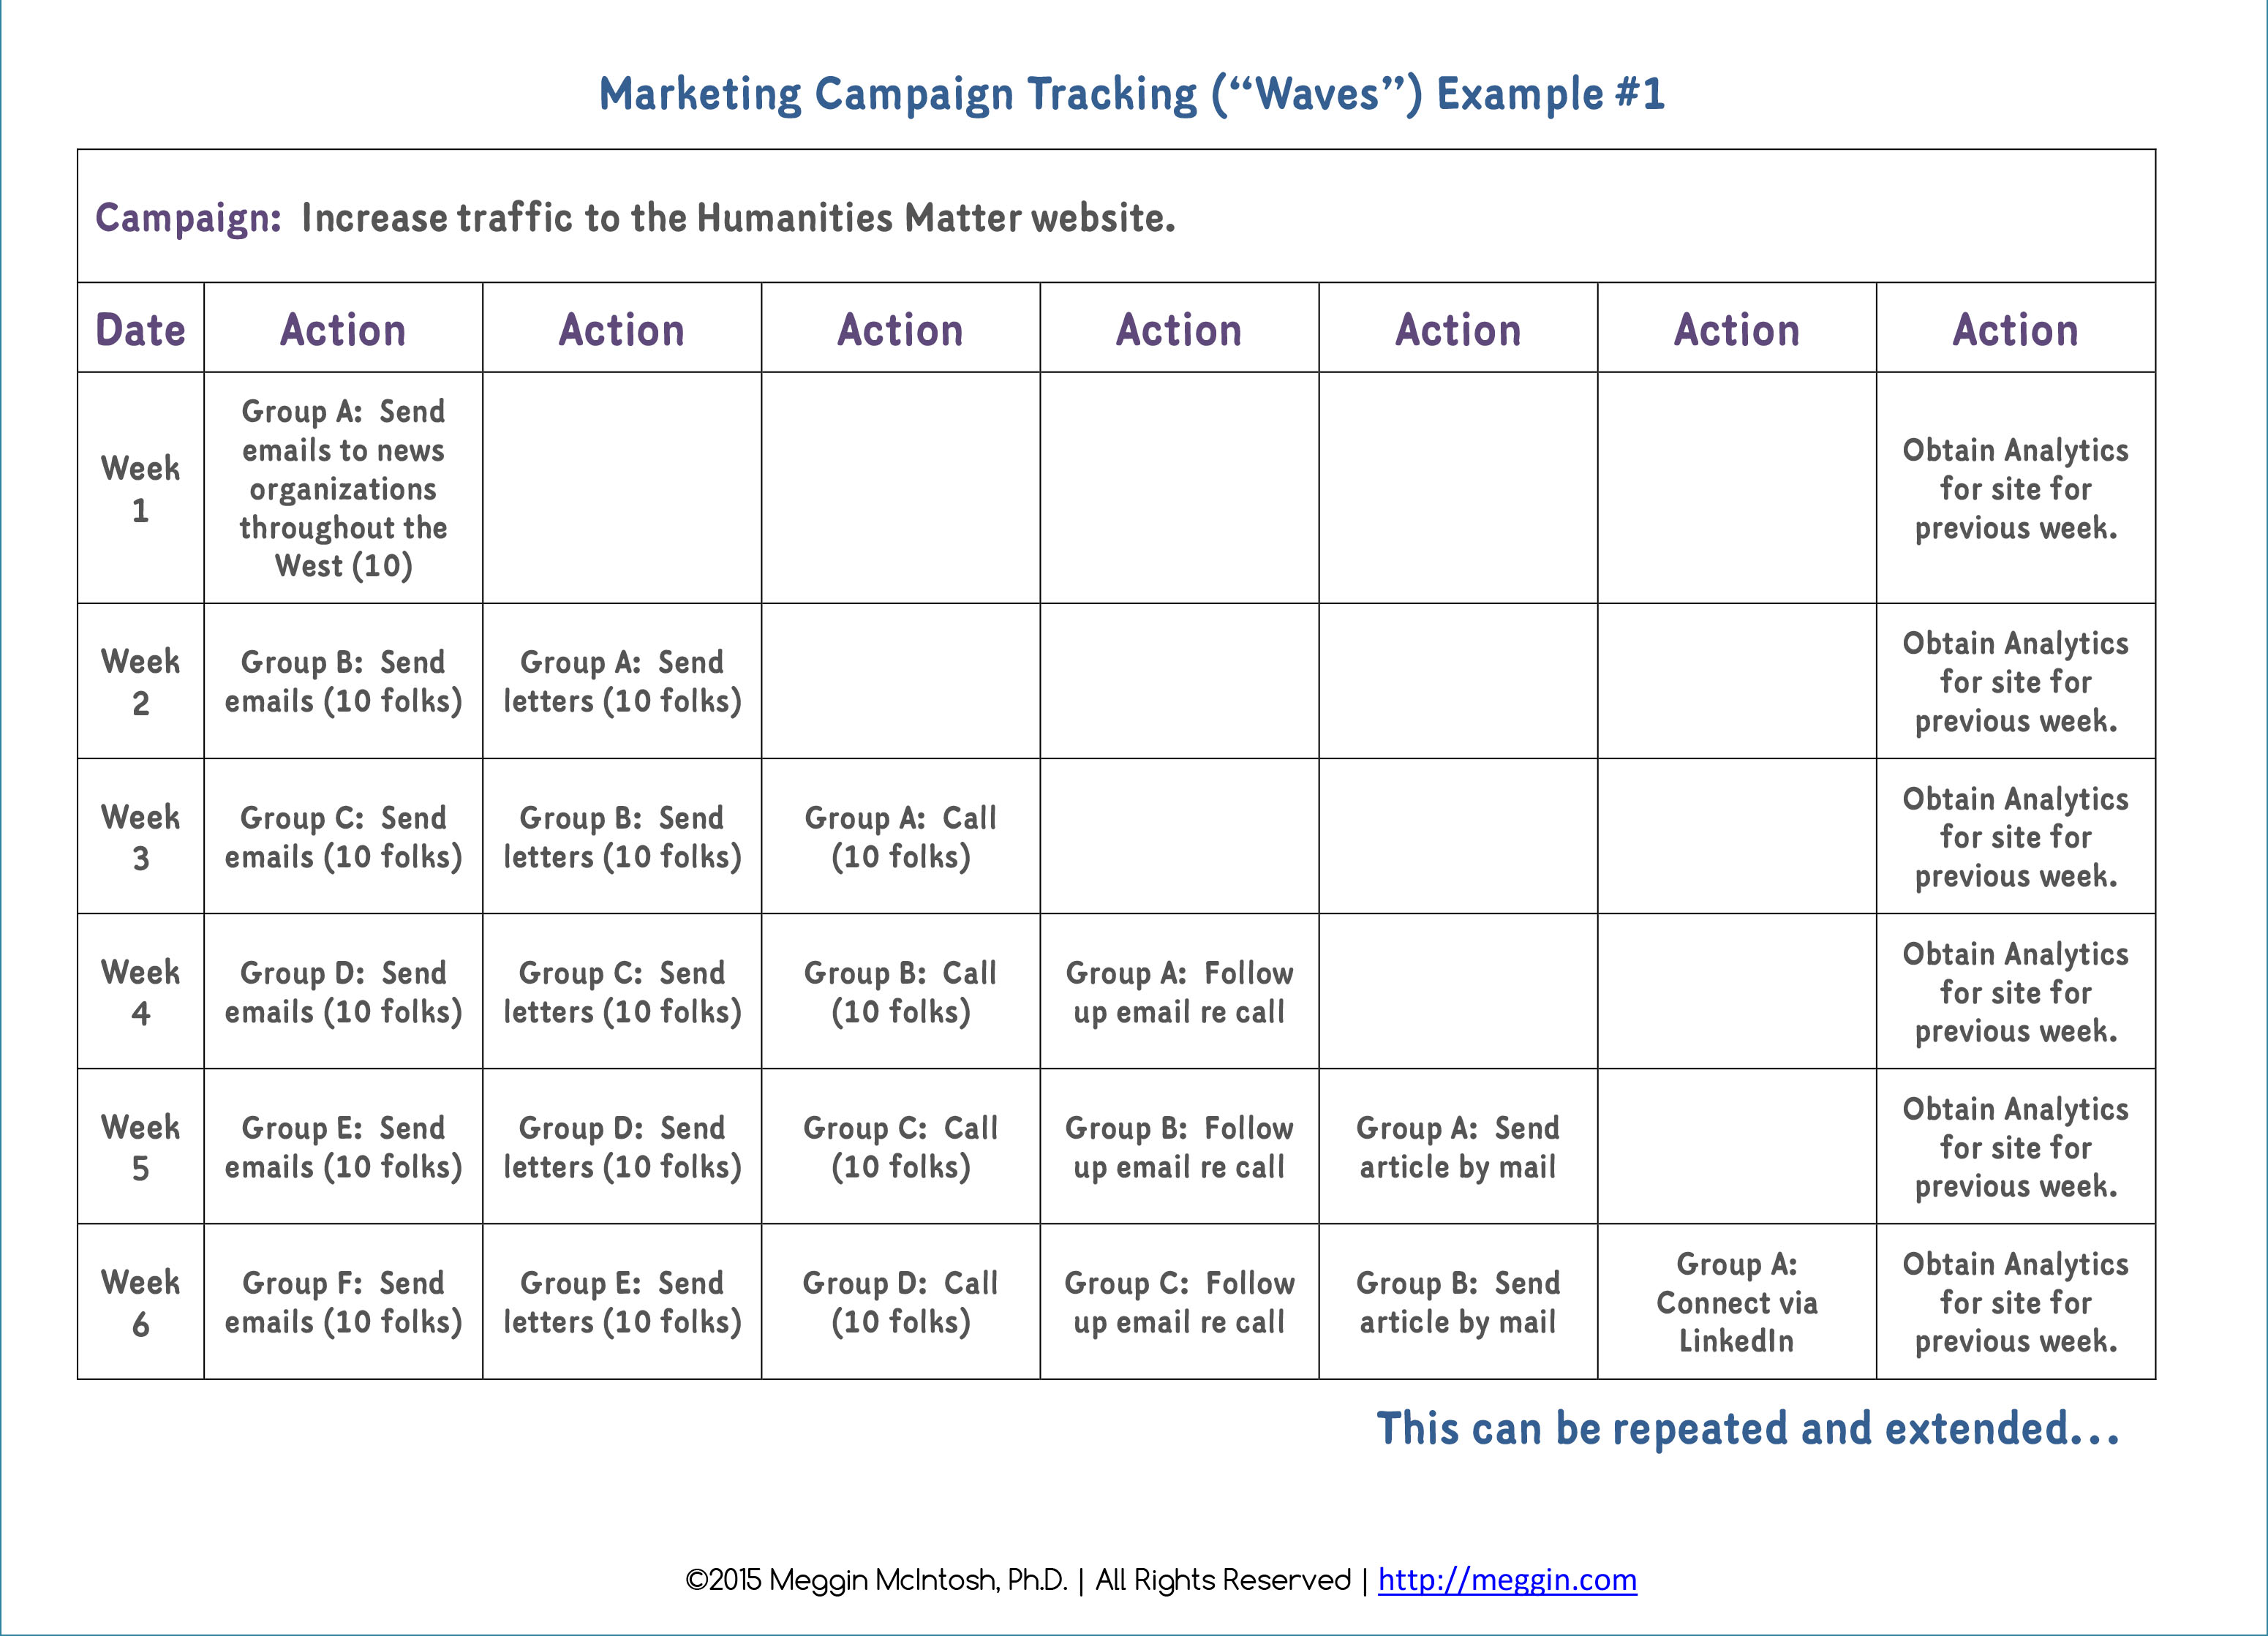 Building Campaign Momentum – Sample Marketing Campaign